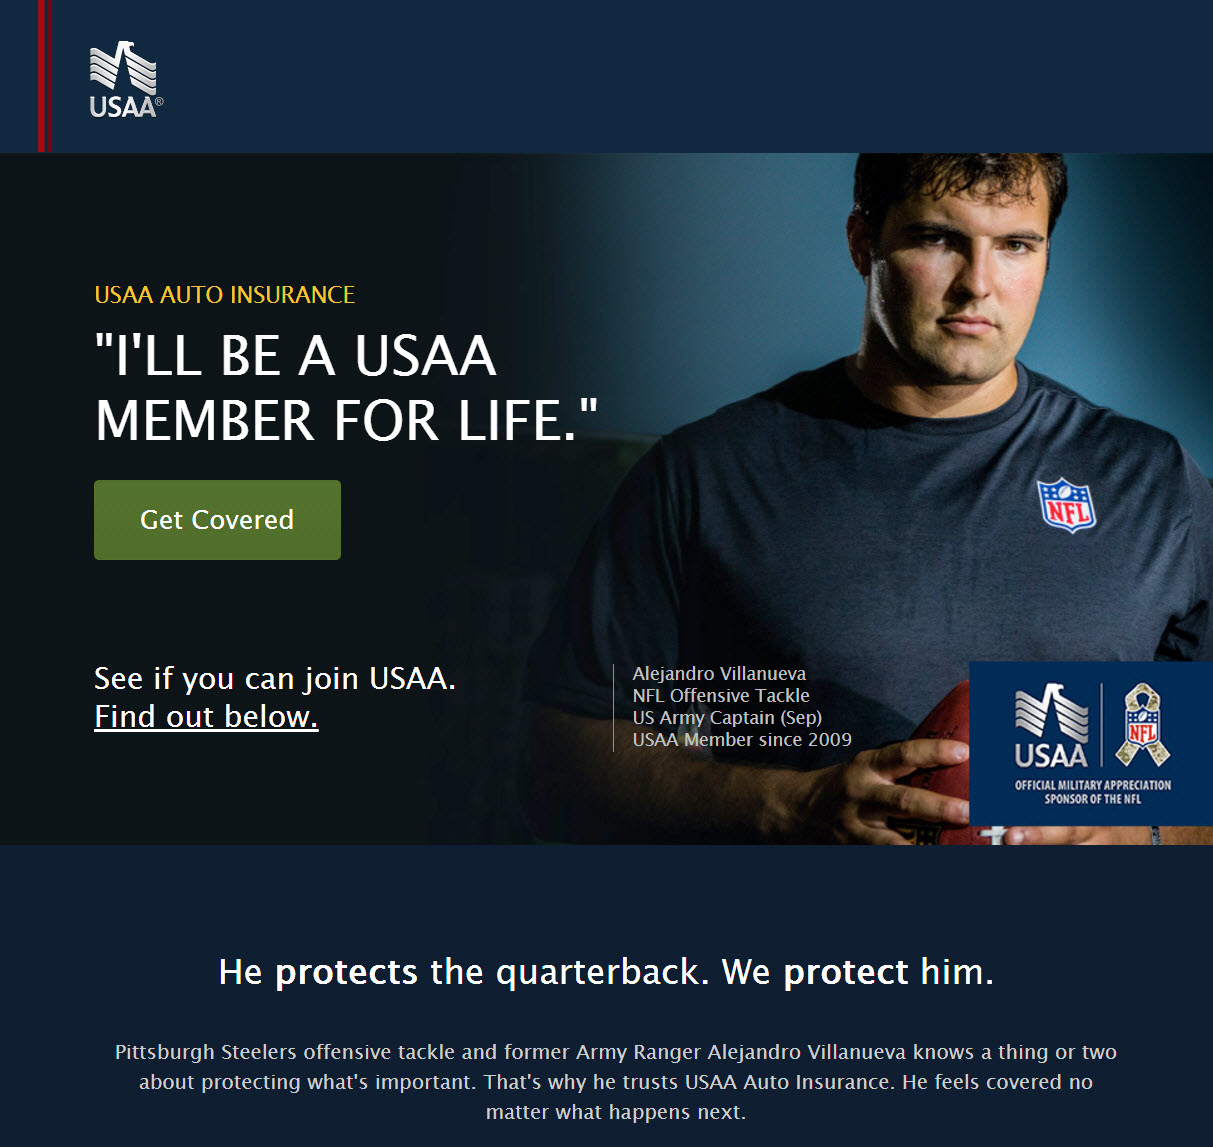 usaa marketing Usaa's approach to marketing mix modeling (mmm) has allowed the advertiser to achieve a variety of outcomes across the funnel, yielding insights into the optimal allocation and marginal utility of usaa's investments across offline and online channels.